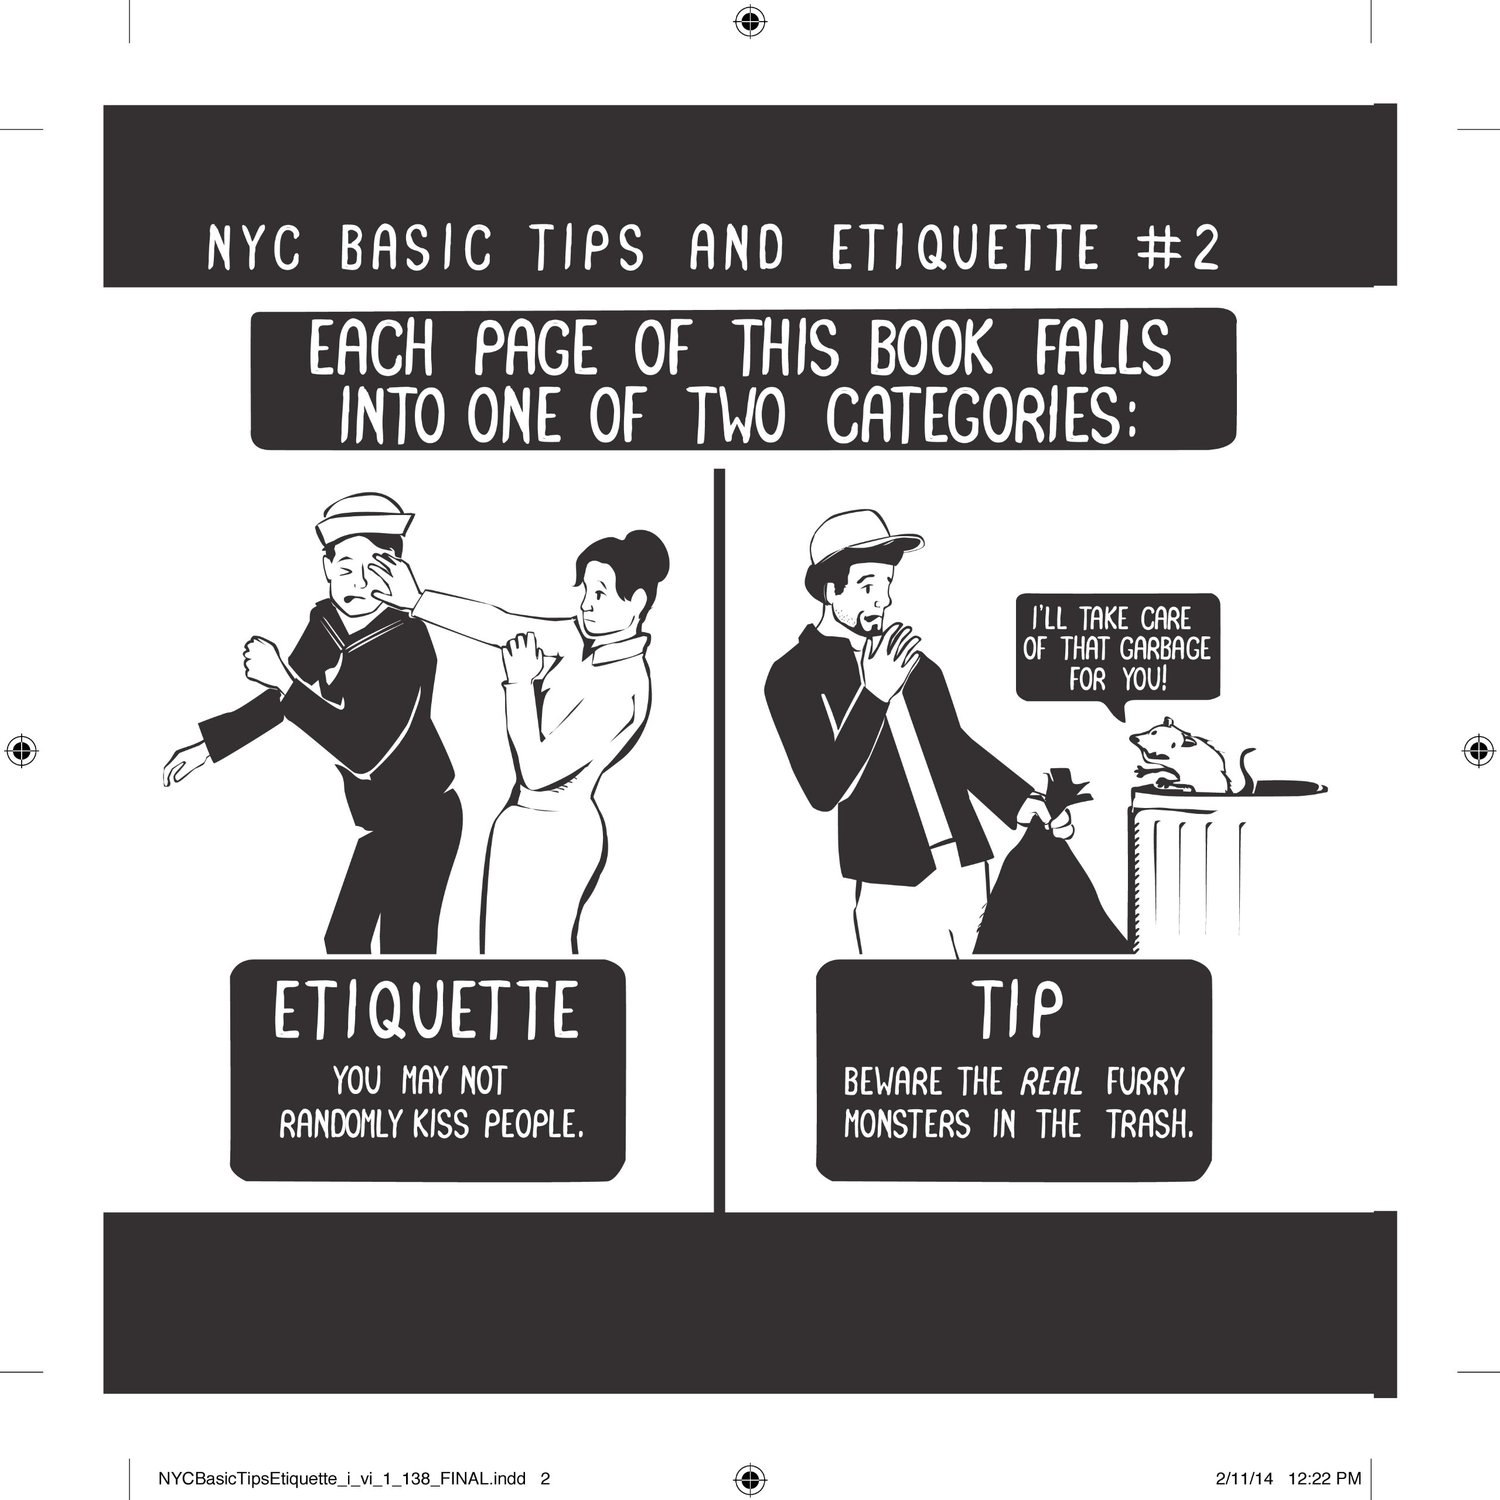 NYC Basic Tips & Etiquette